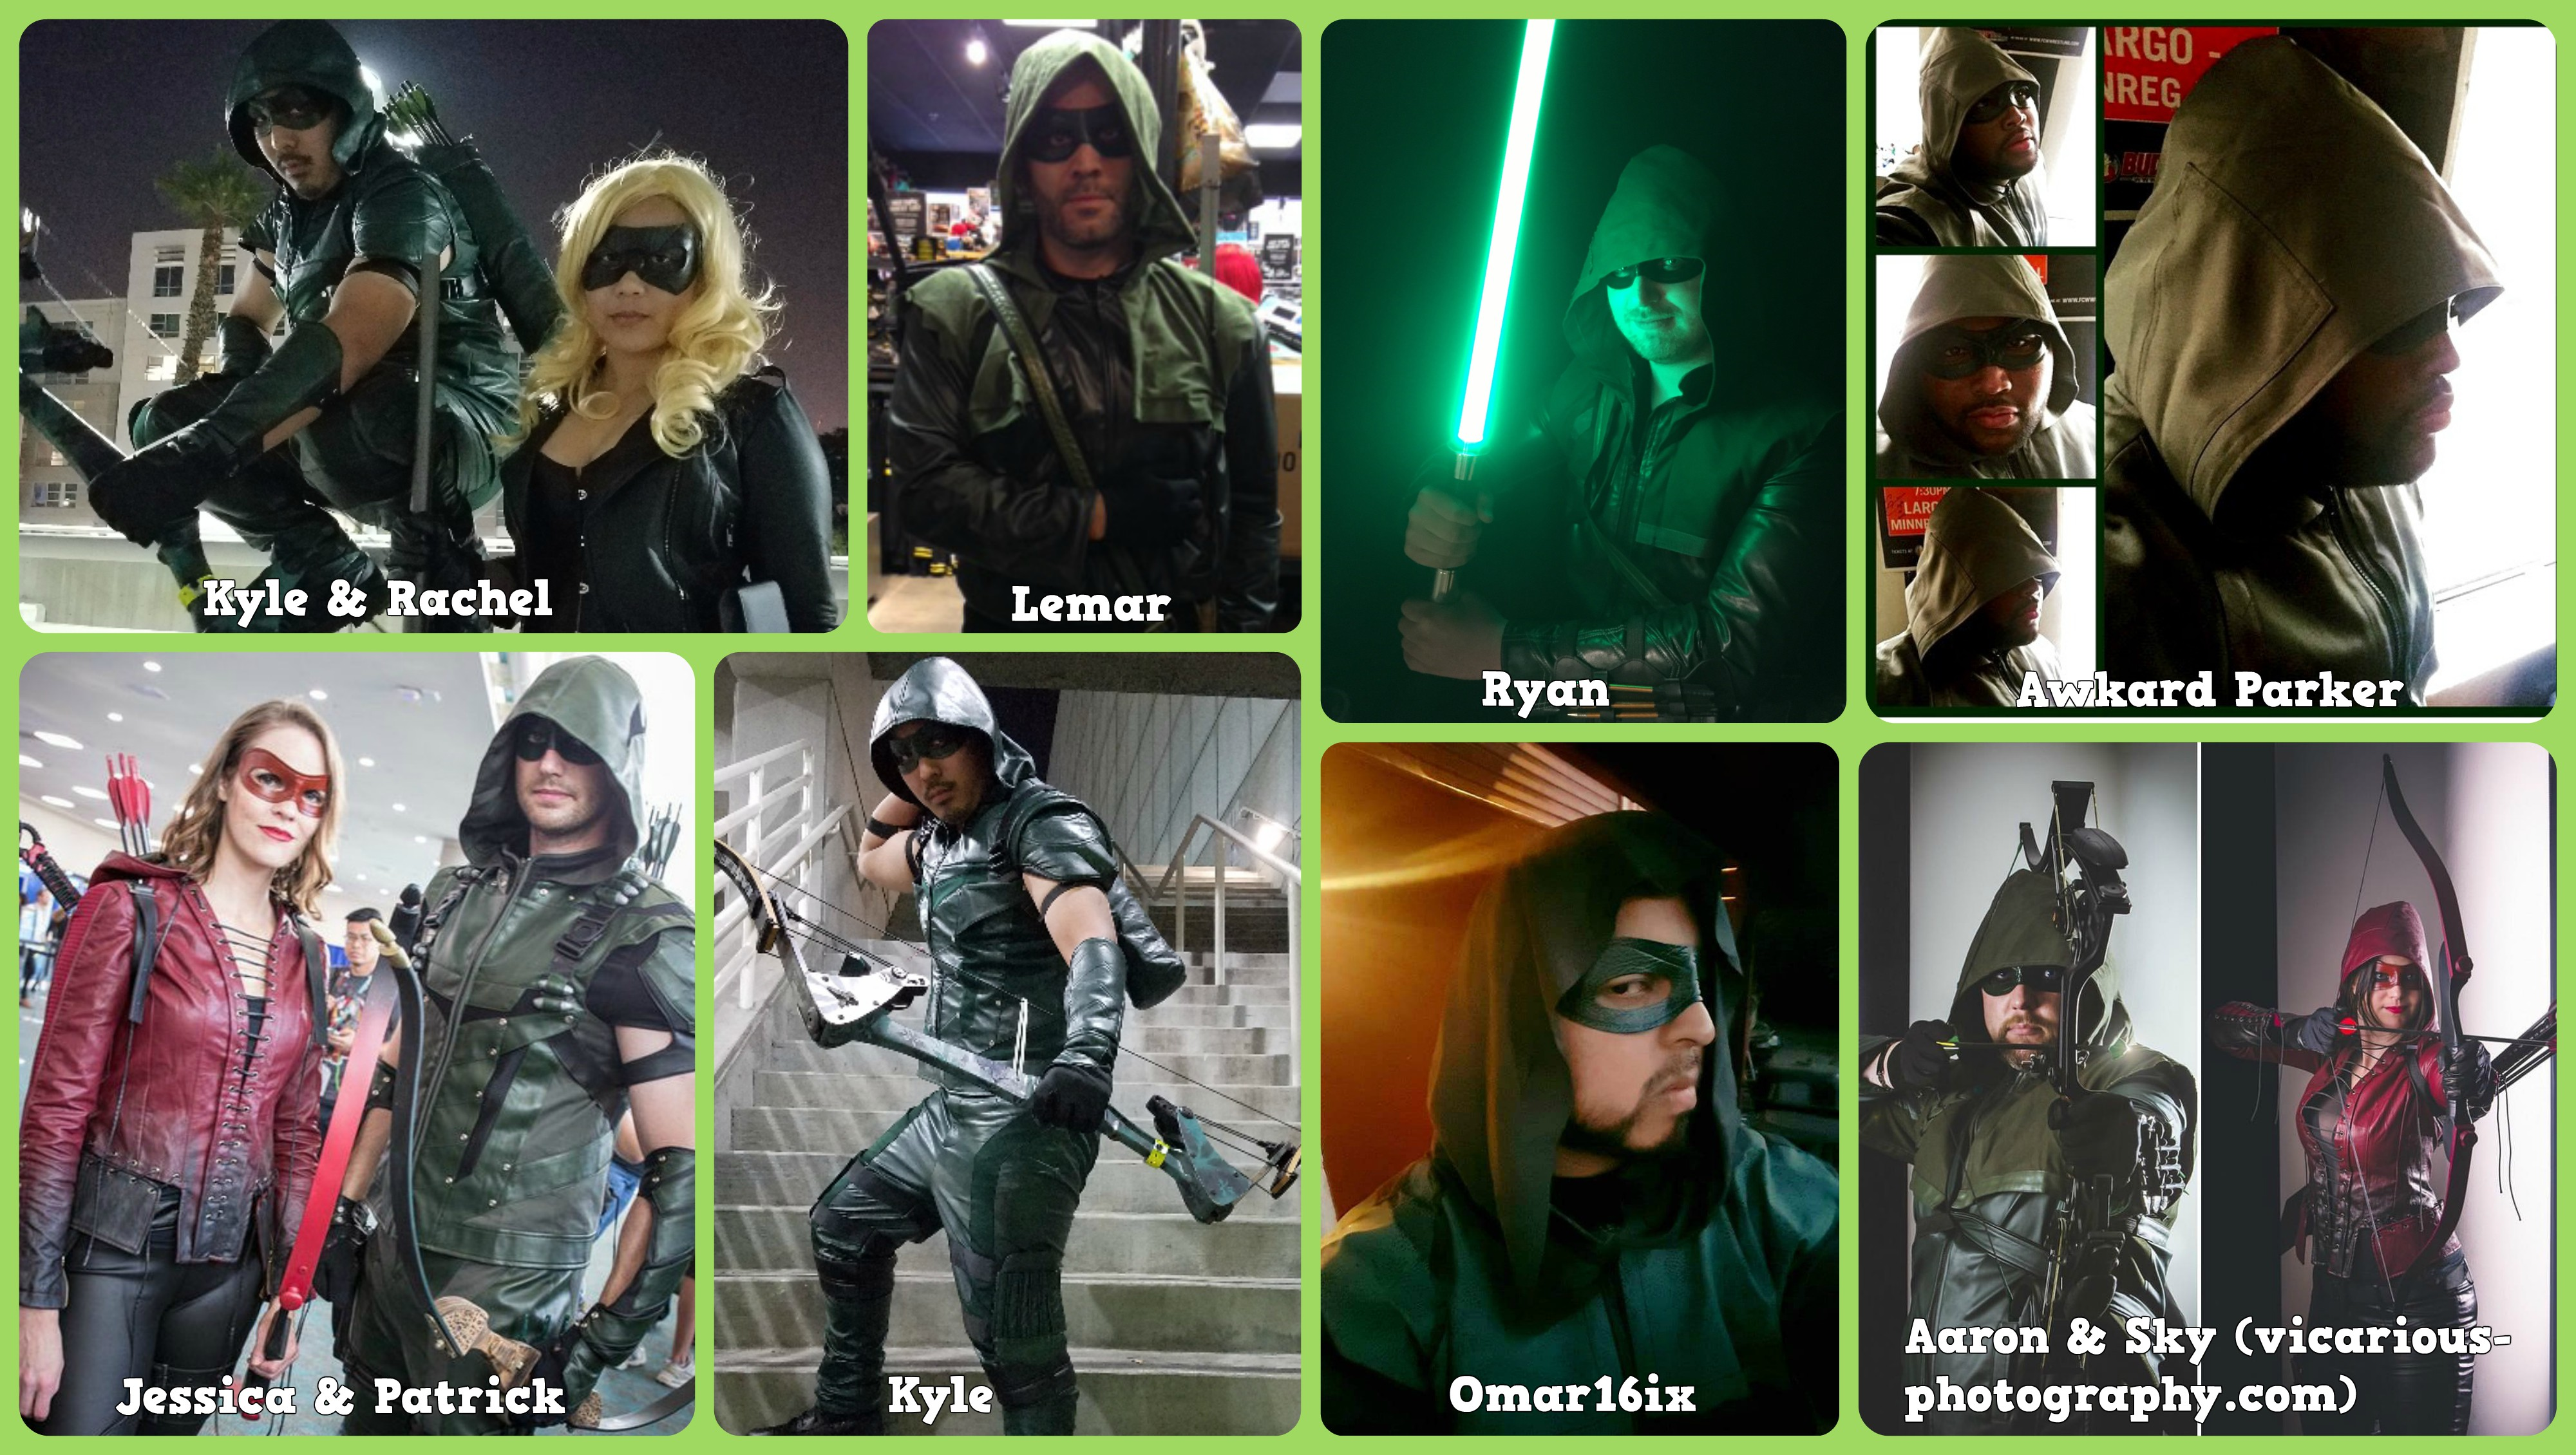 arrow-mask-cosplay-collage.jpg